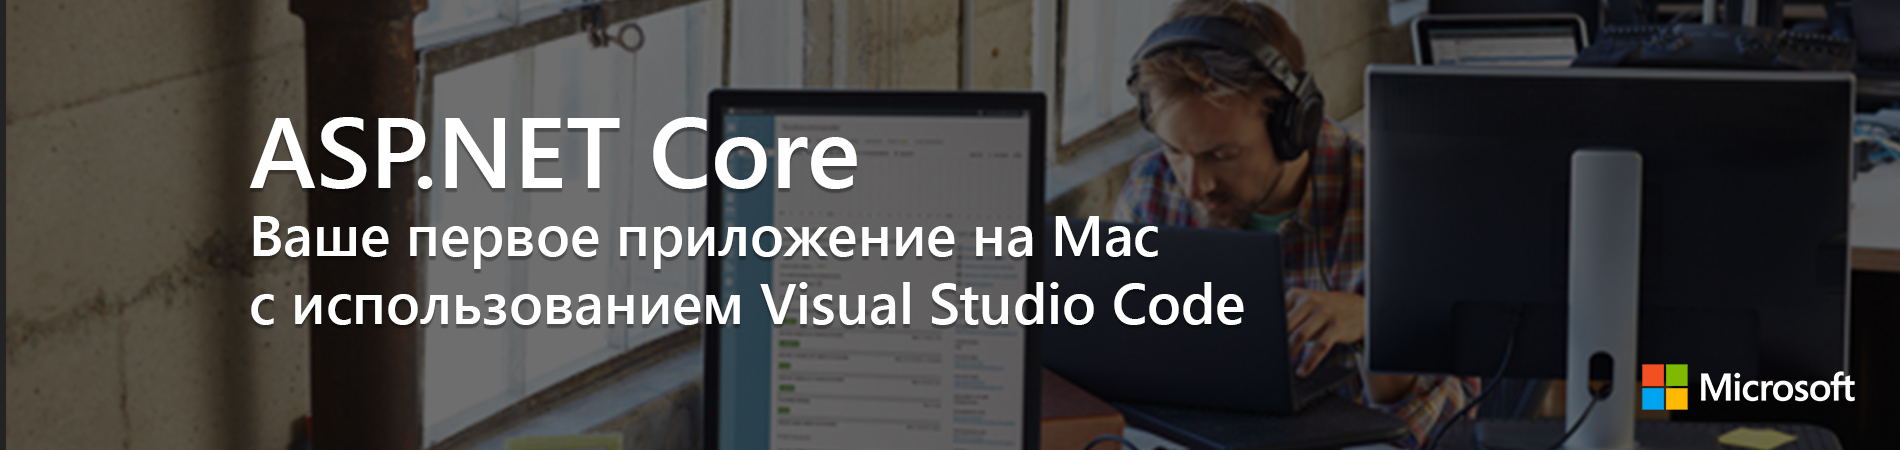 ASP.NET Core: Ваше первое приложение на Mac c использованием Visual Studio Code